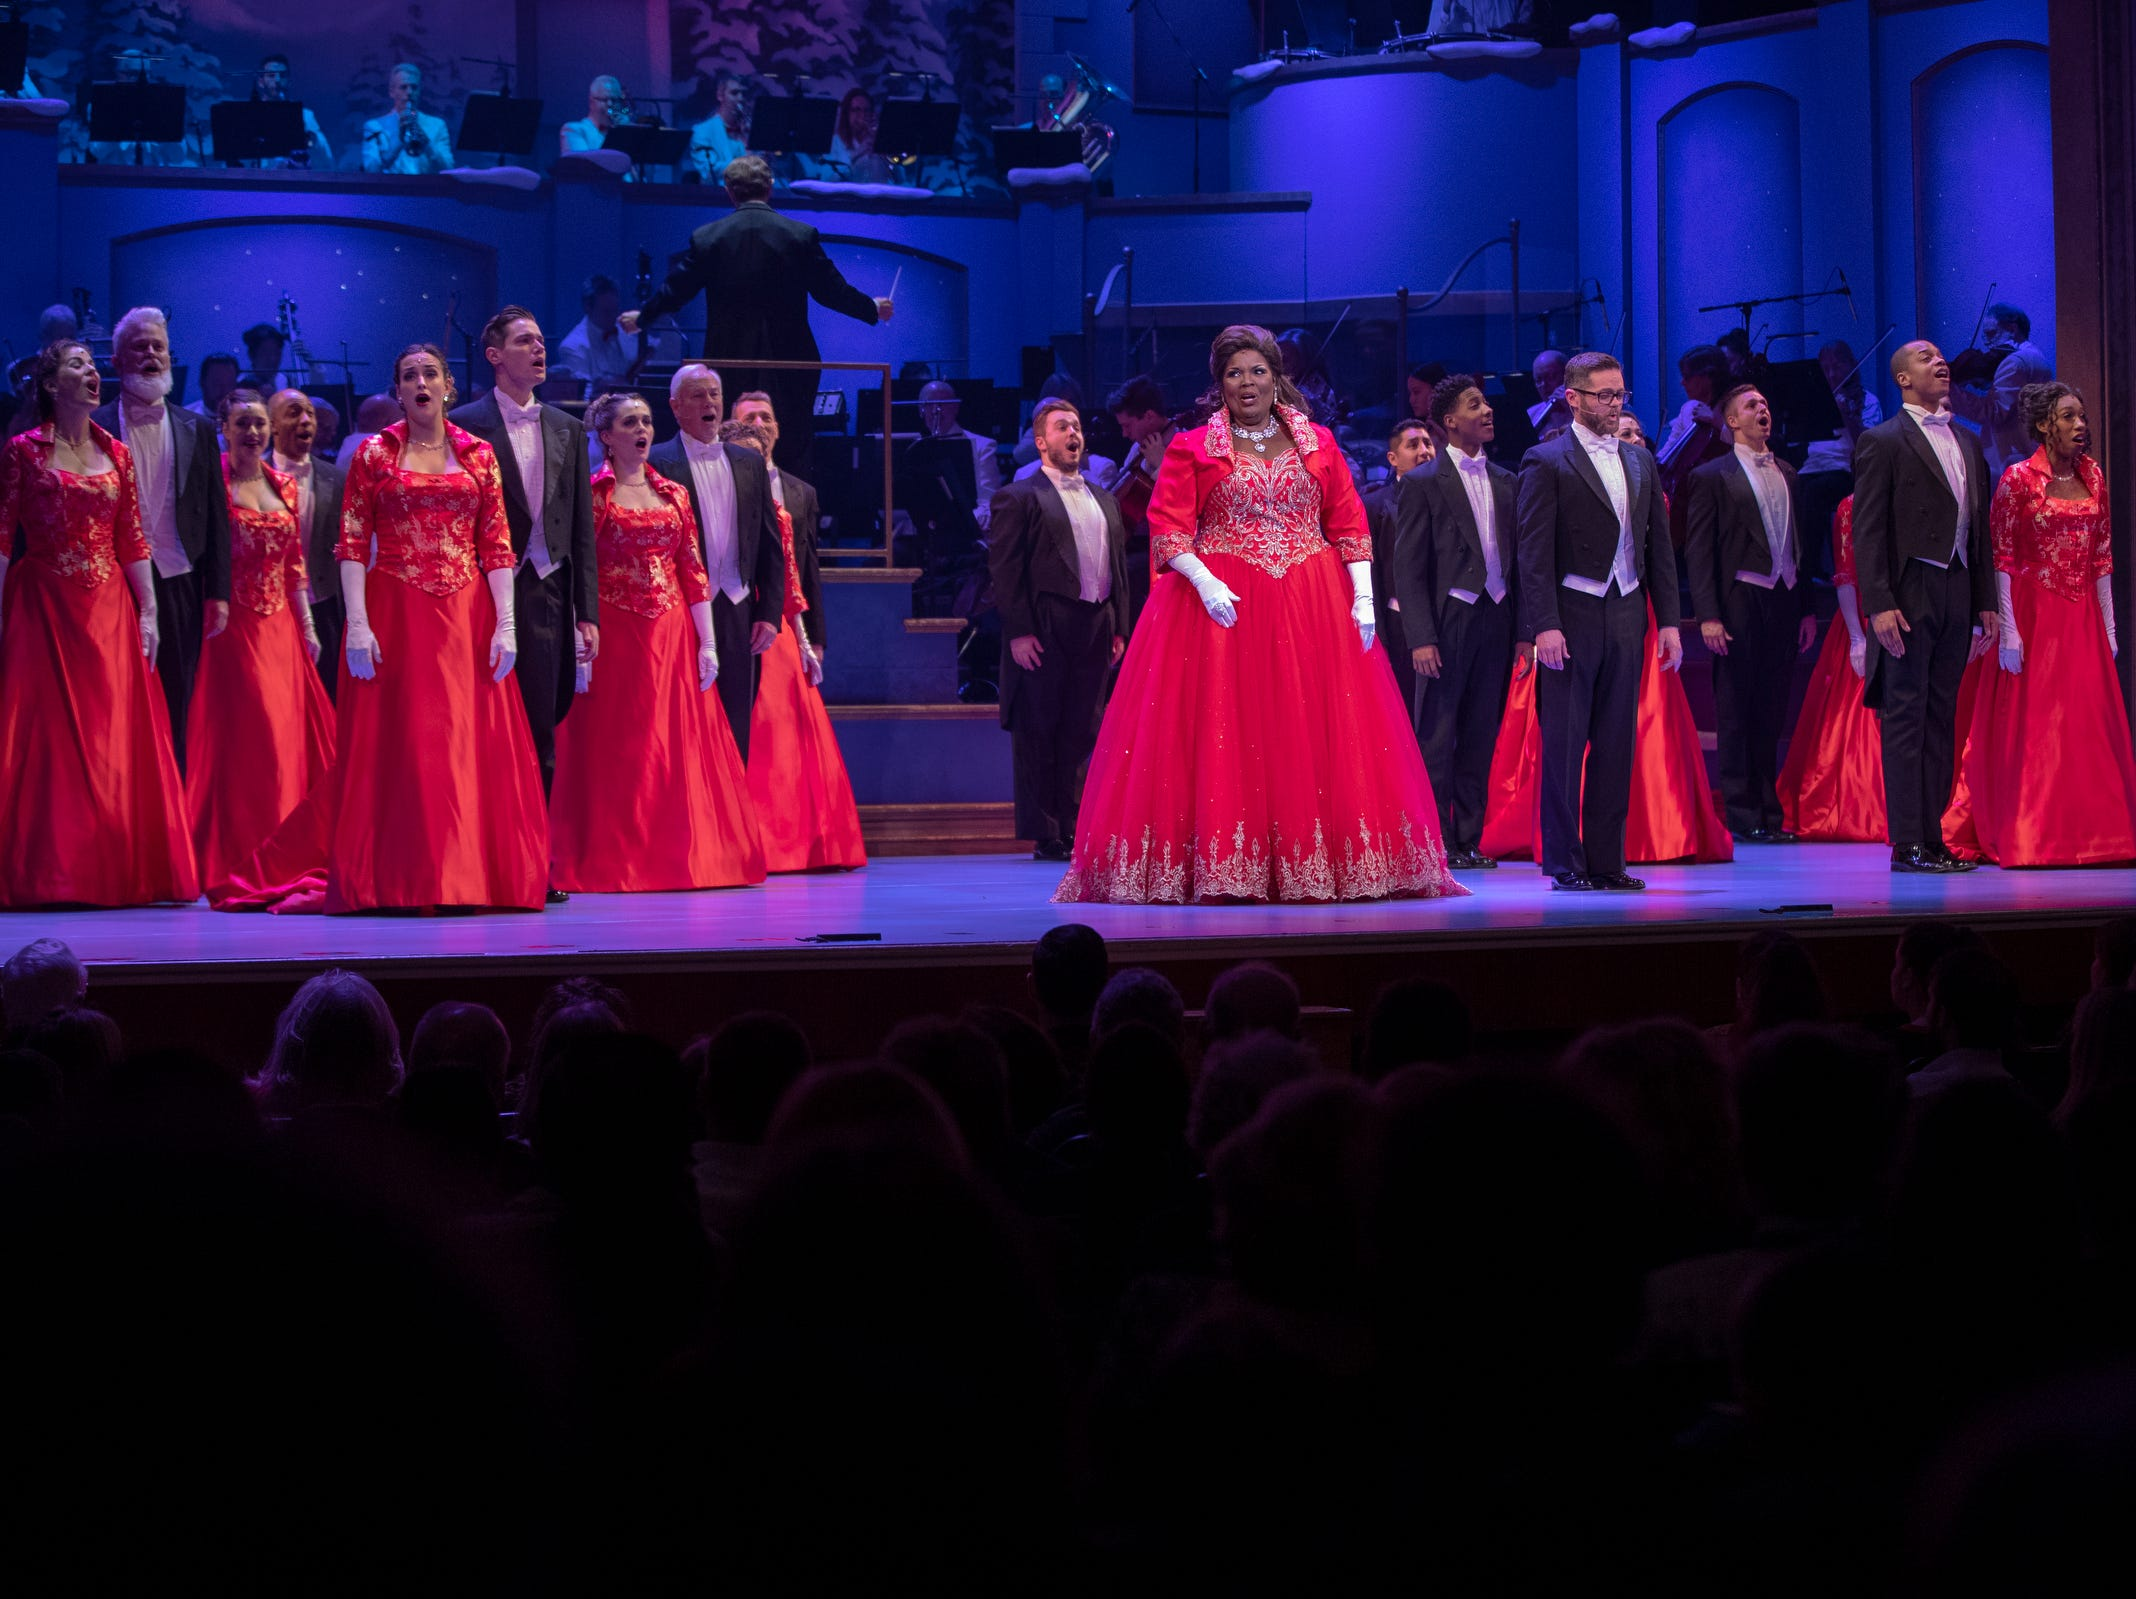 An ensemble at Yuletide Celebration, showcasing the Indianapolis Symphony Orchestra, at Hilbert Circle Theater, Indianapolis, Sunday. Dec. 23, 2018. The extravaganza features dancing, holiday songs, and skits.